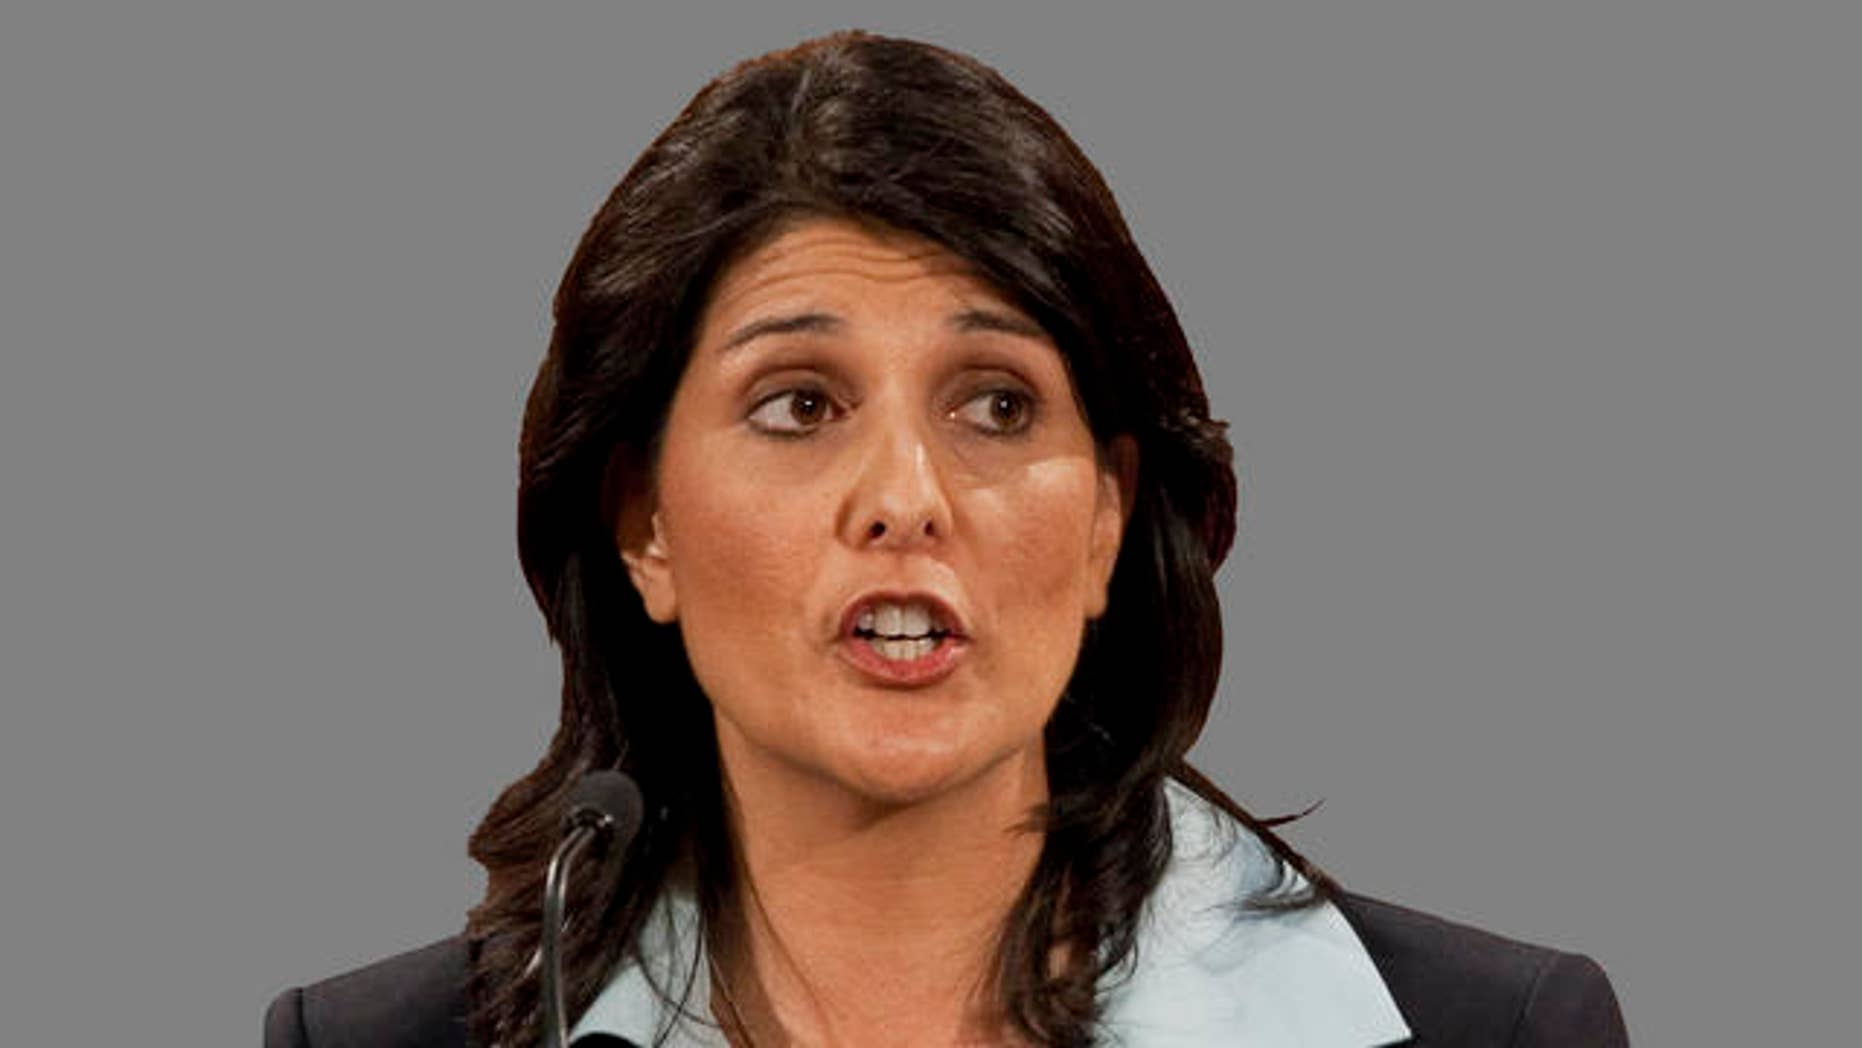 South Carolina's immigration bill, styled after Arizona's controversial measure, awaits Gov. Nikki Haley's signature. A spokesman for Haley has indicated that she plans to sign it. Rights groups vow to file a suit challenging the measure if Haley signs into it law.